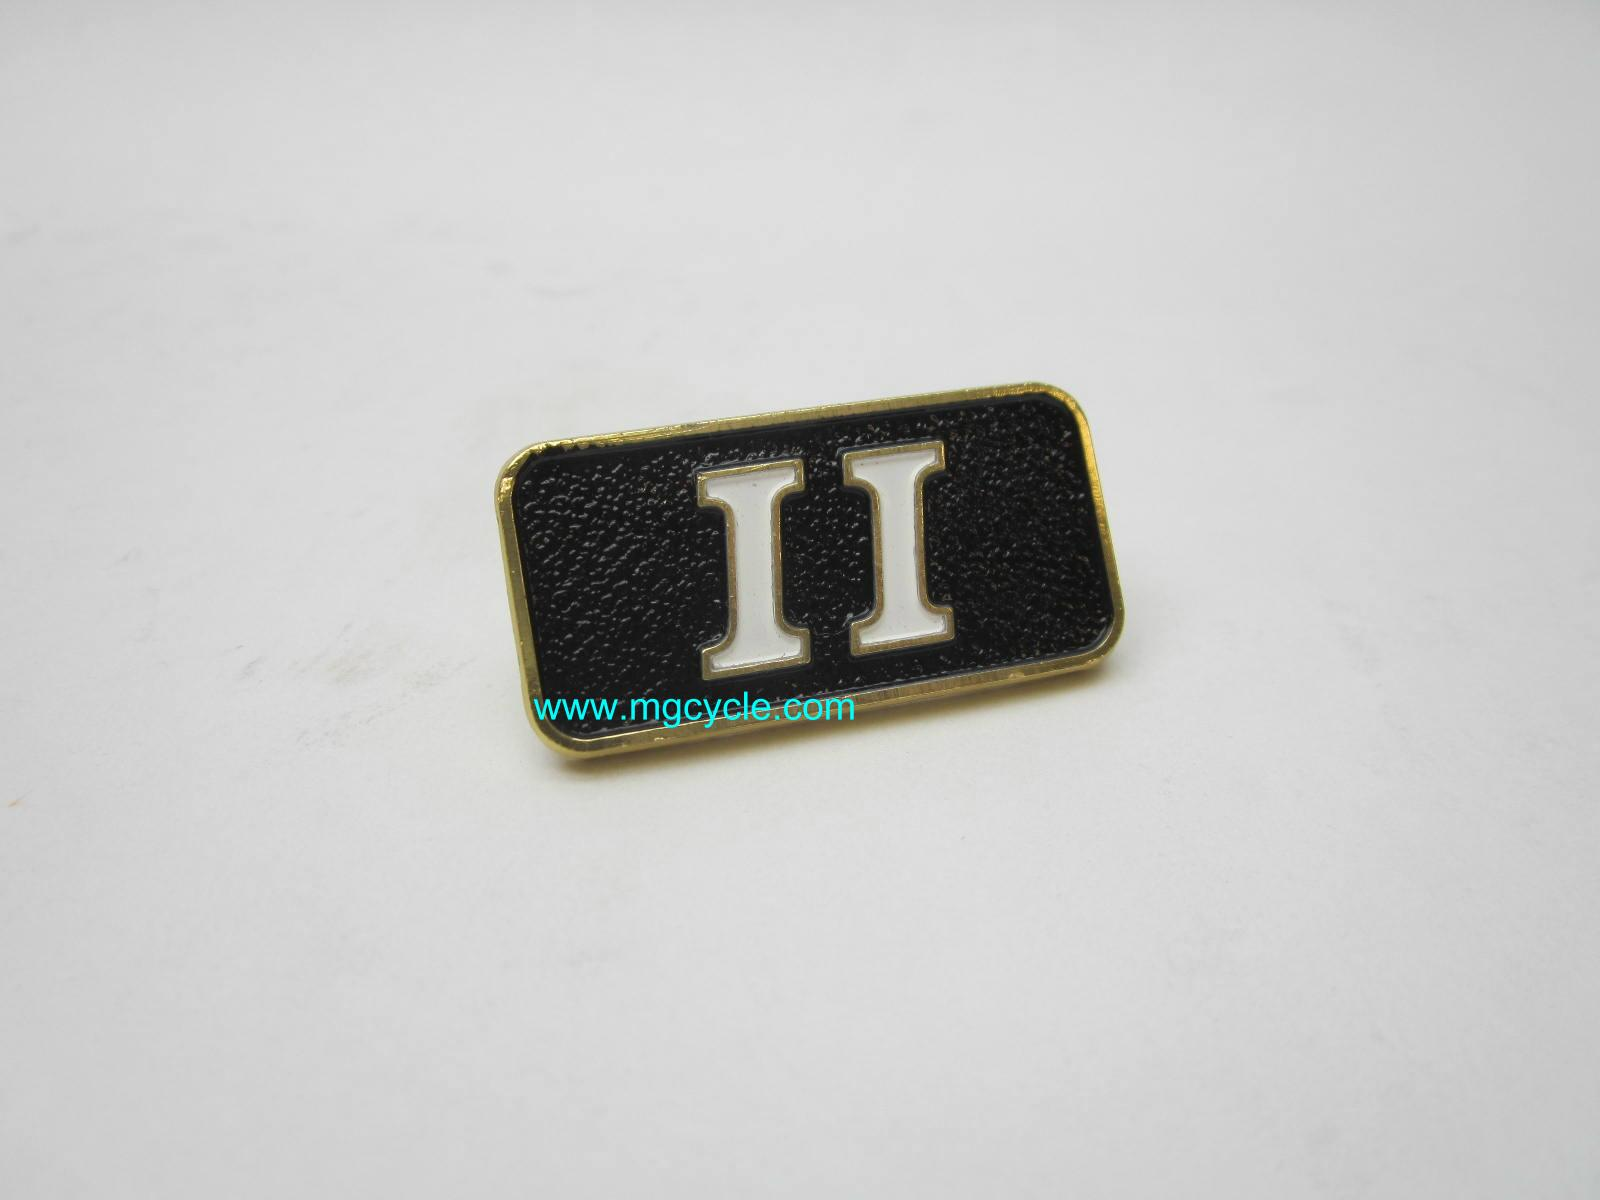 Sidecover badge, II, for LM II SP II V35 II V50 II